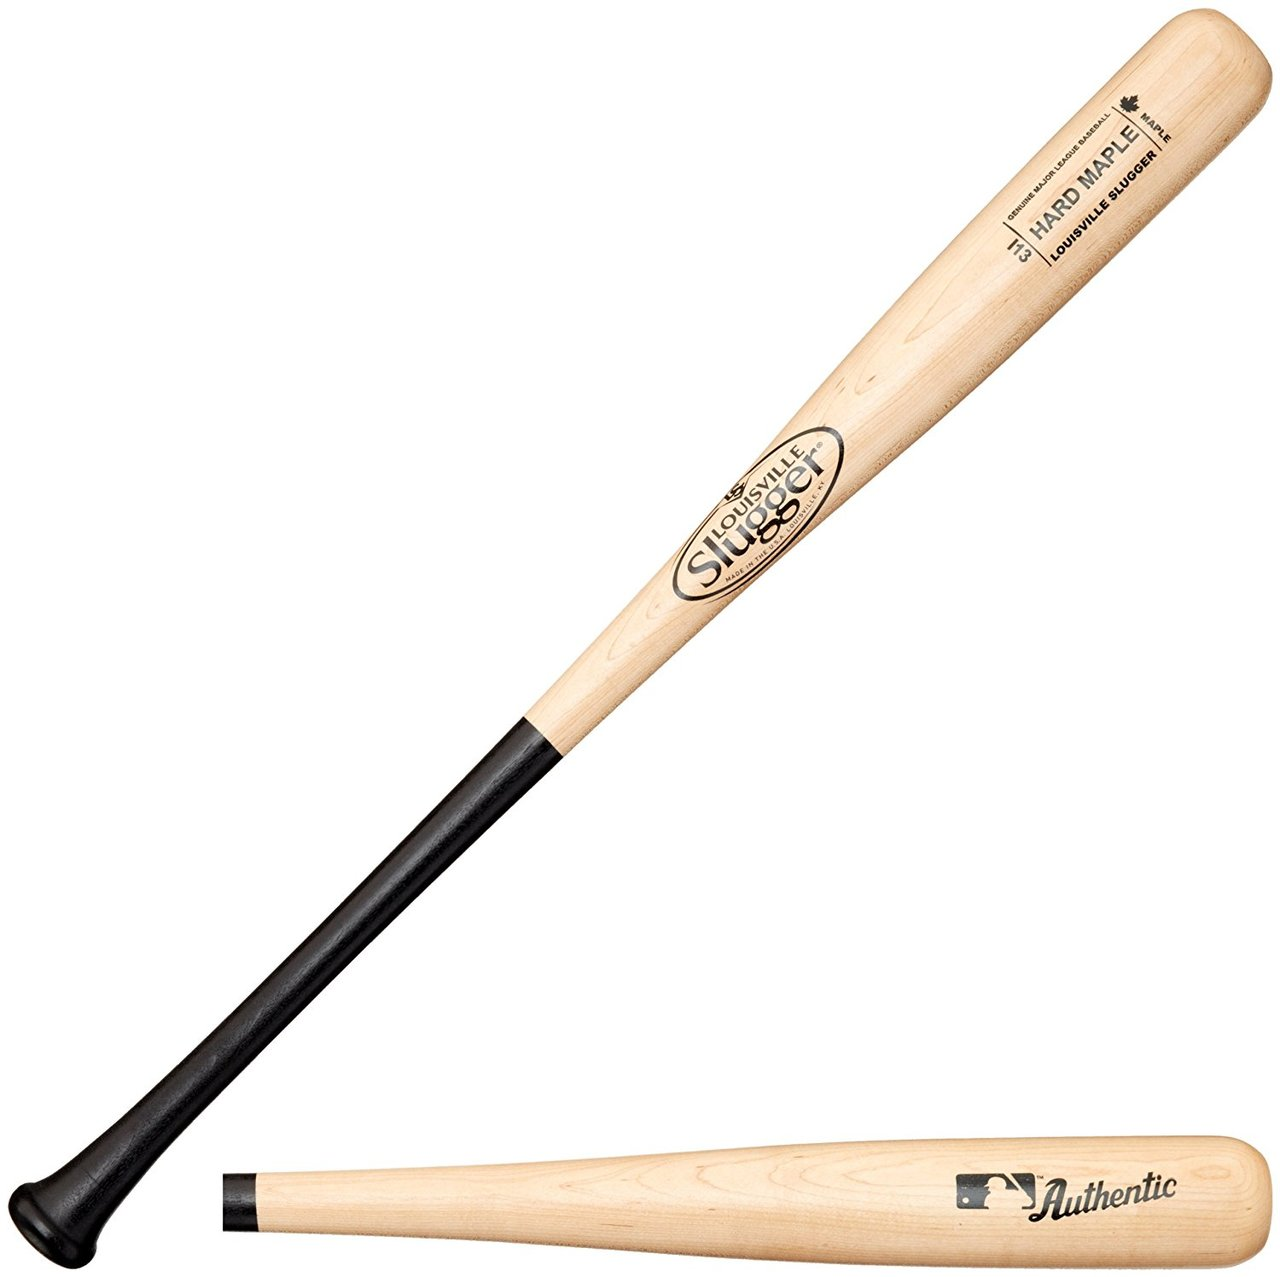 louisville-slugger-hard-maple-wood-baseball-bat-i13-32-inch WBHM14-13CBN32 Louisville 044277005887 Louisville Slugger Hard Maple Wood Baseball Bat Turning model I13 is